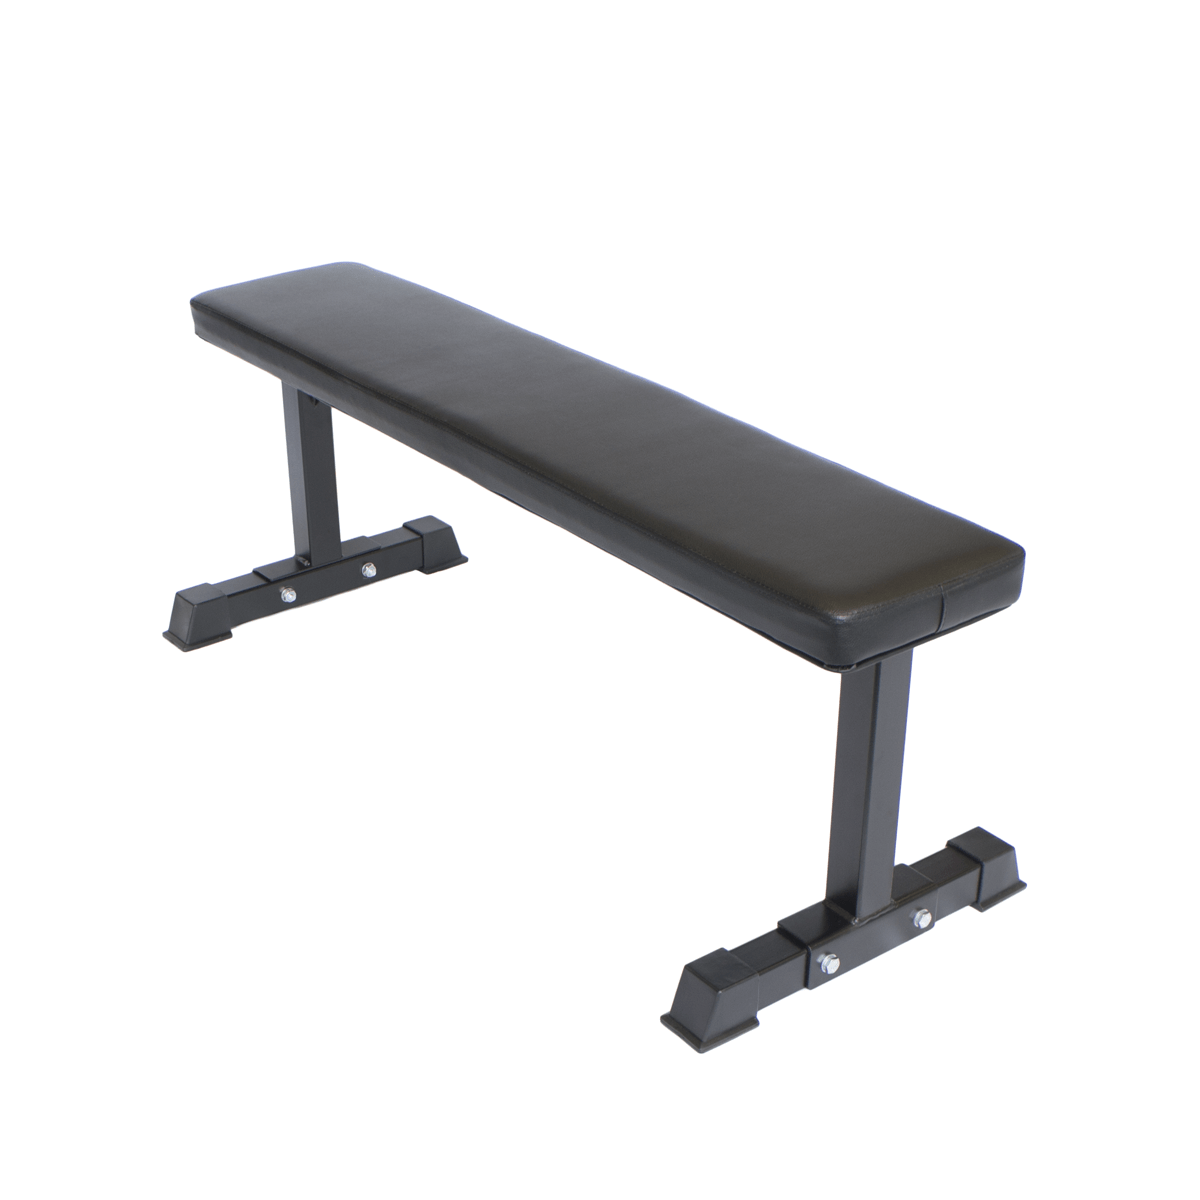 Black Bench Heavy Duty Flat Weight Bench